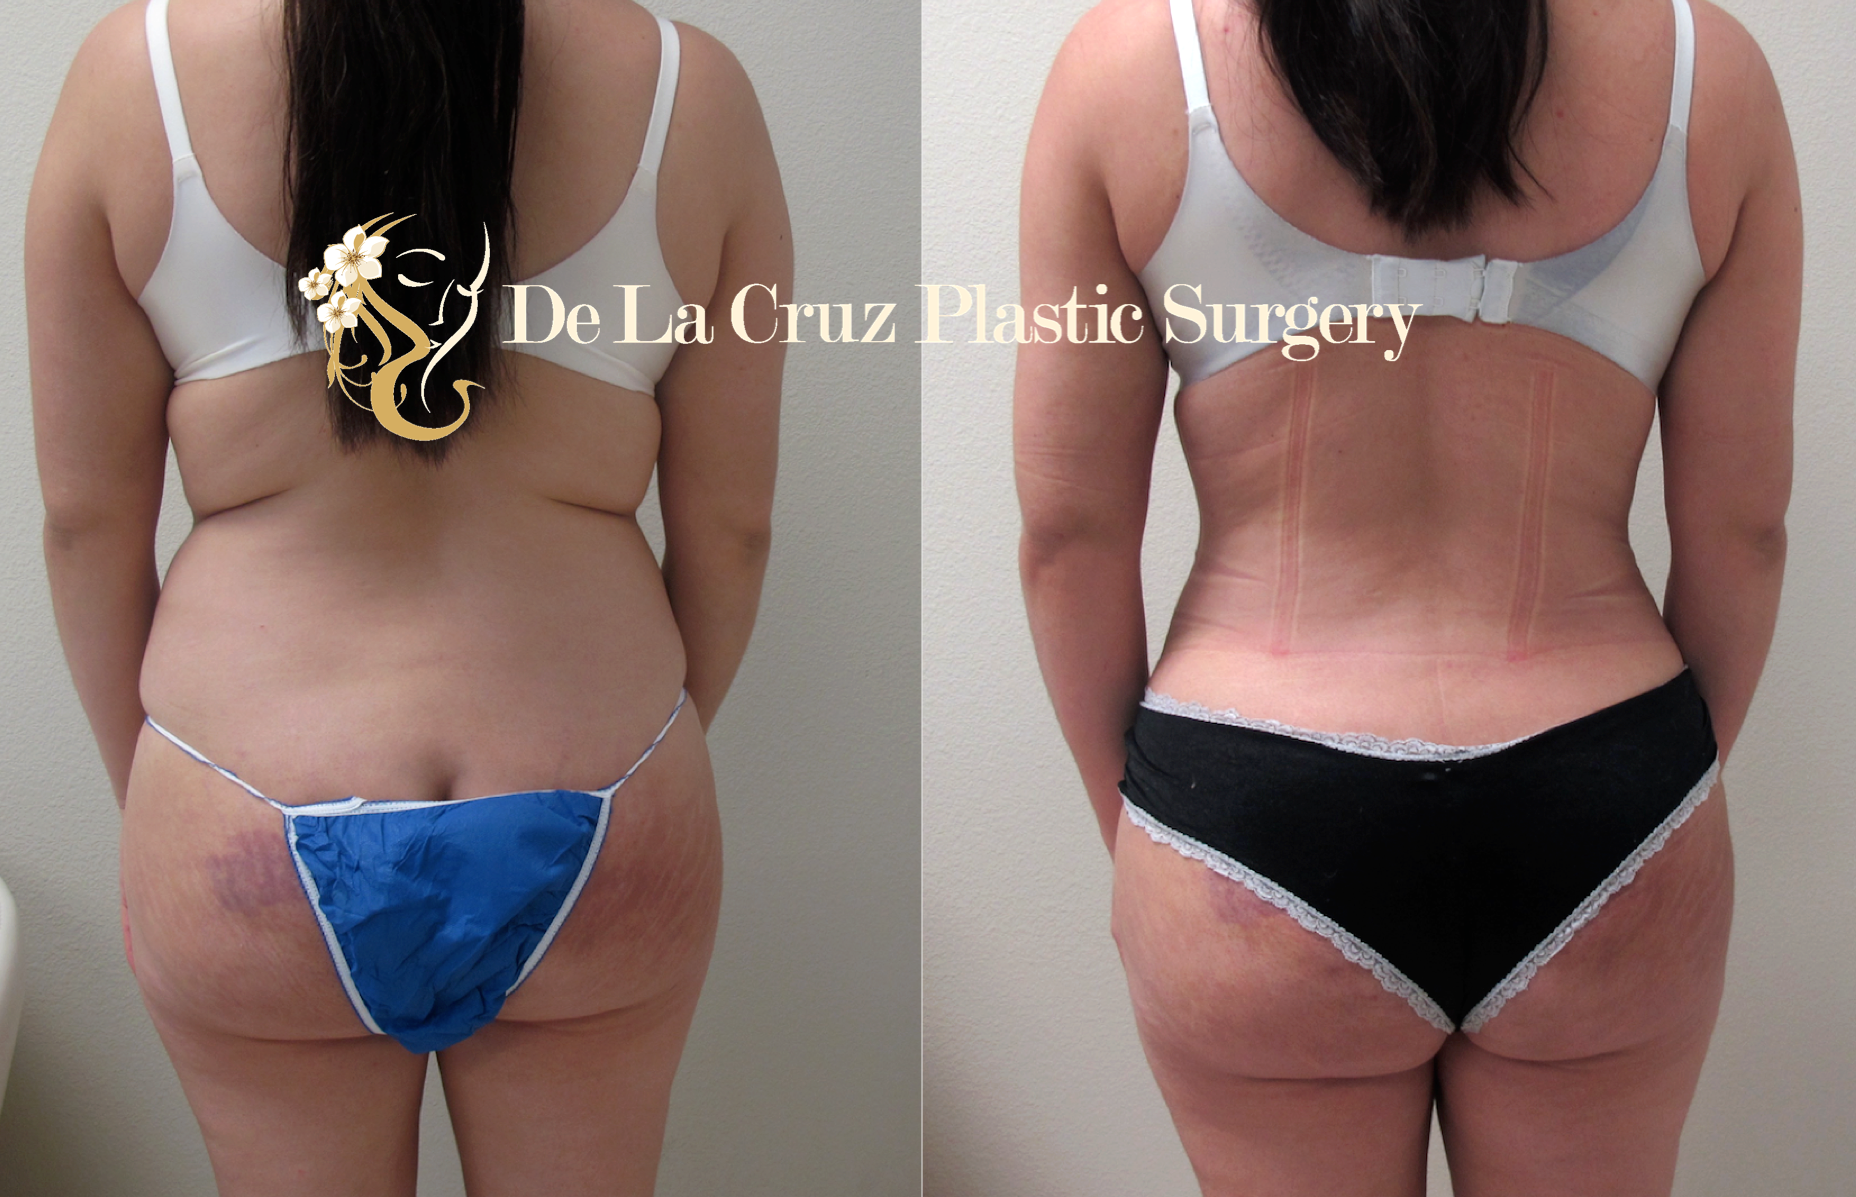 Before & After Photos of Hydrogel Removal using the VASER  Liposuction  with Fat transfer.  Patient's pain improved after surgery.  Procedure performed by Dr. Emmanuel De La Cruz, a Houston Plastic Surgeon.